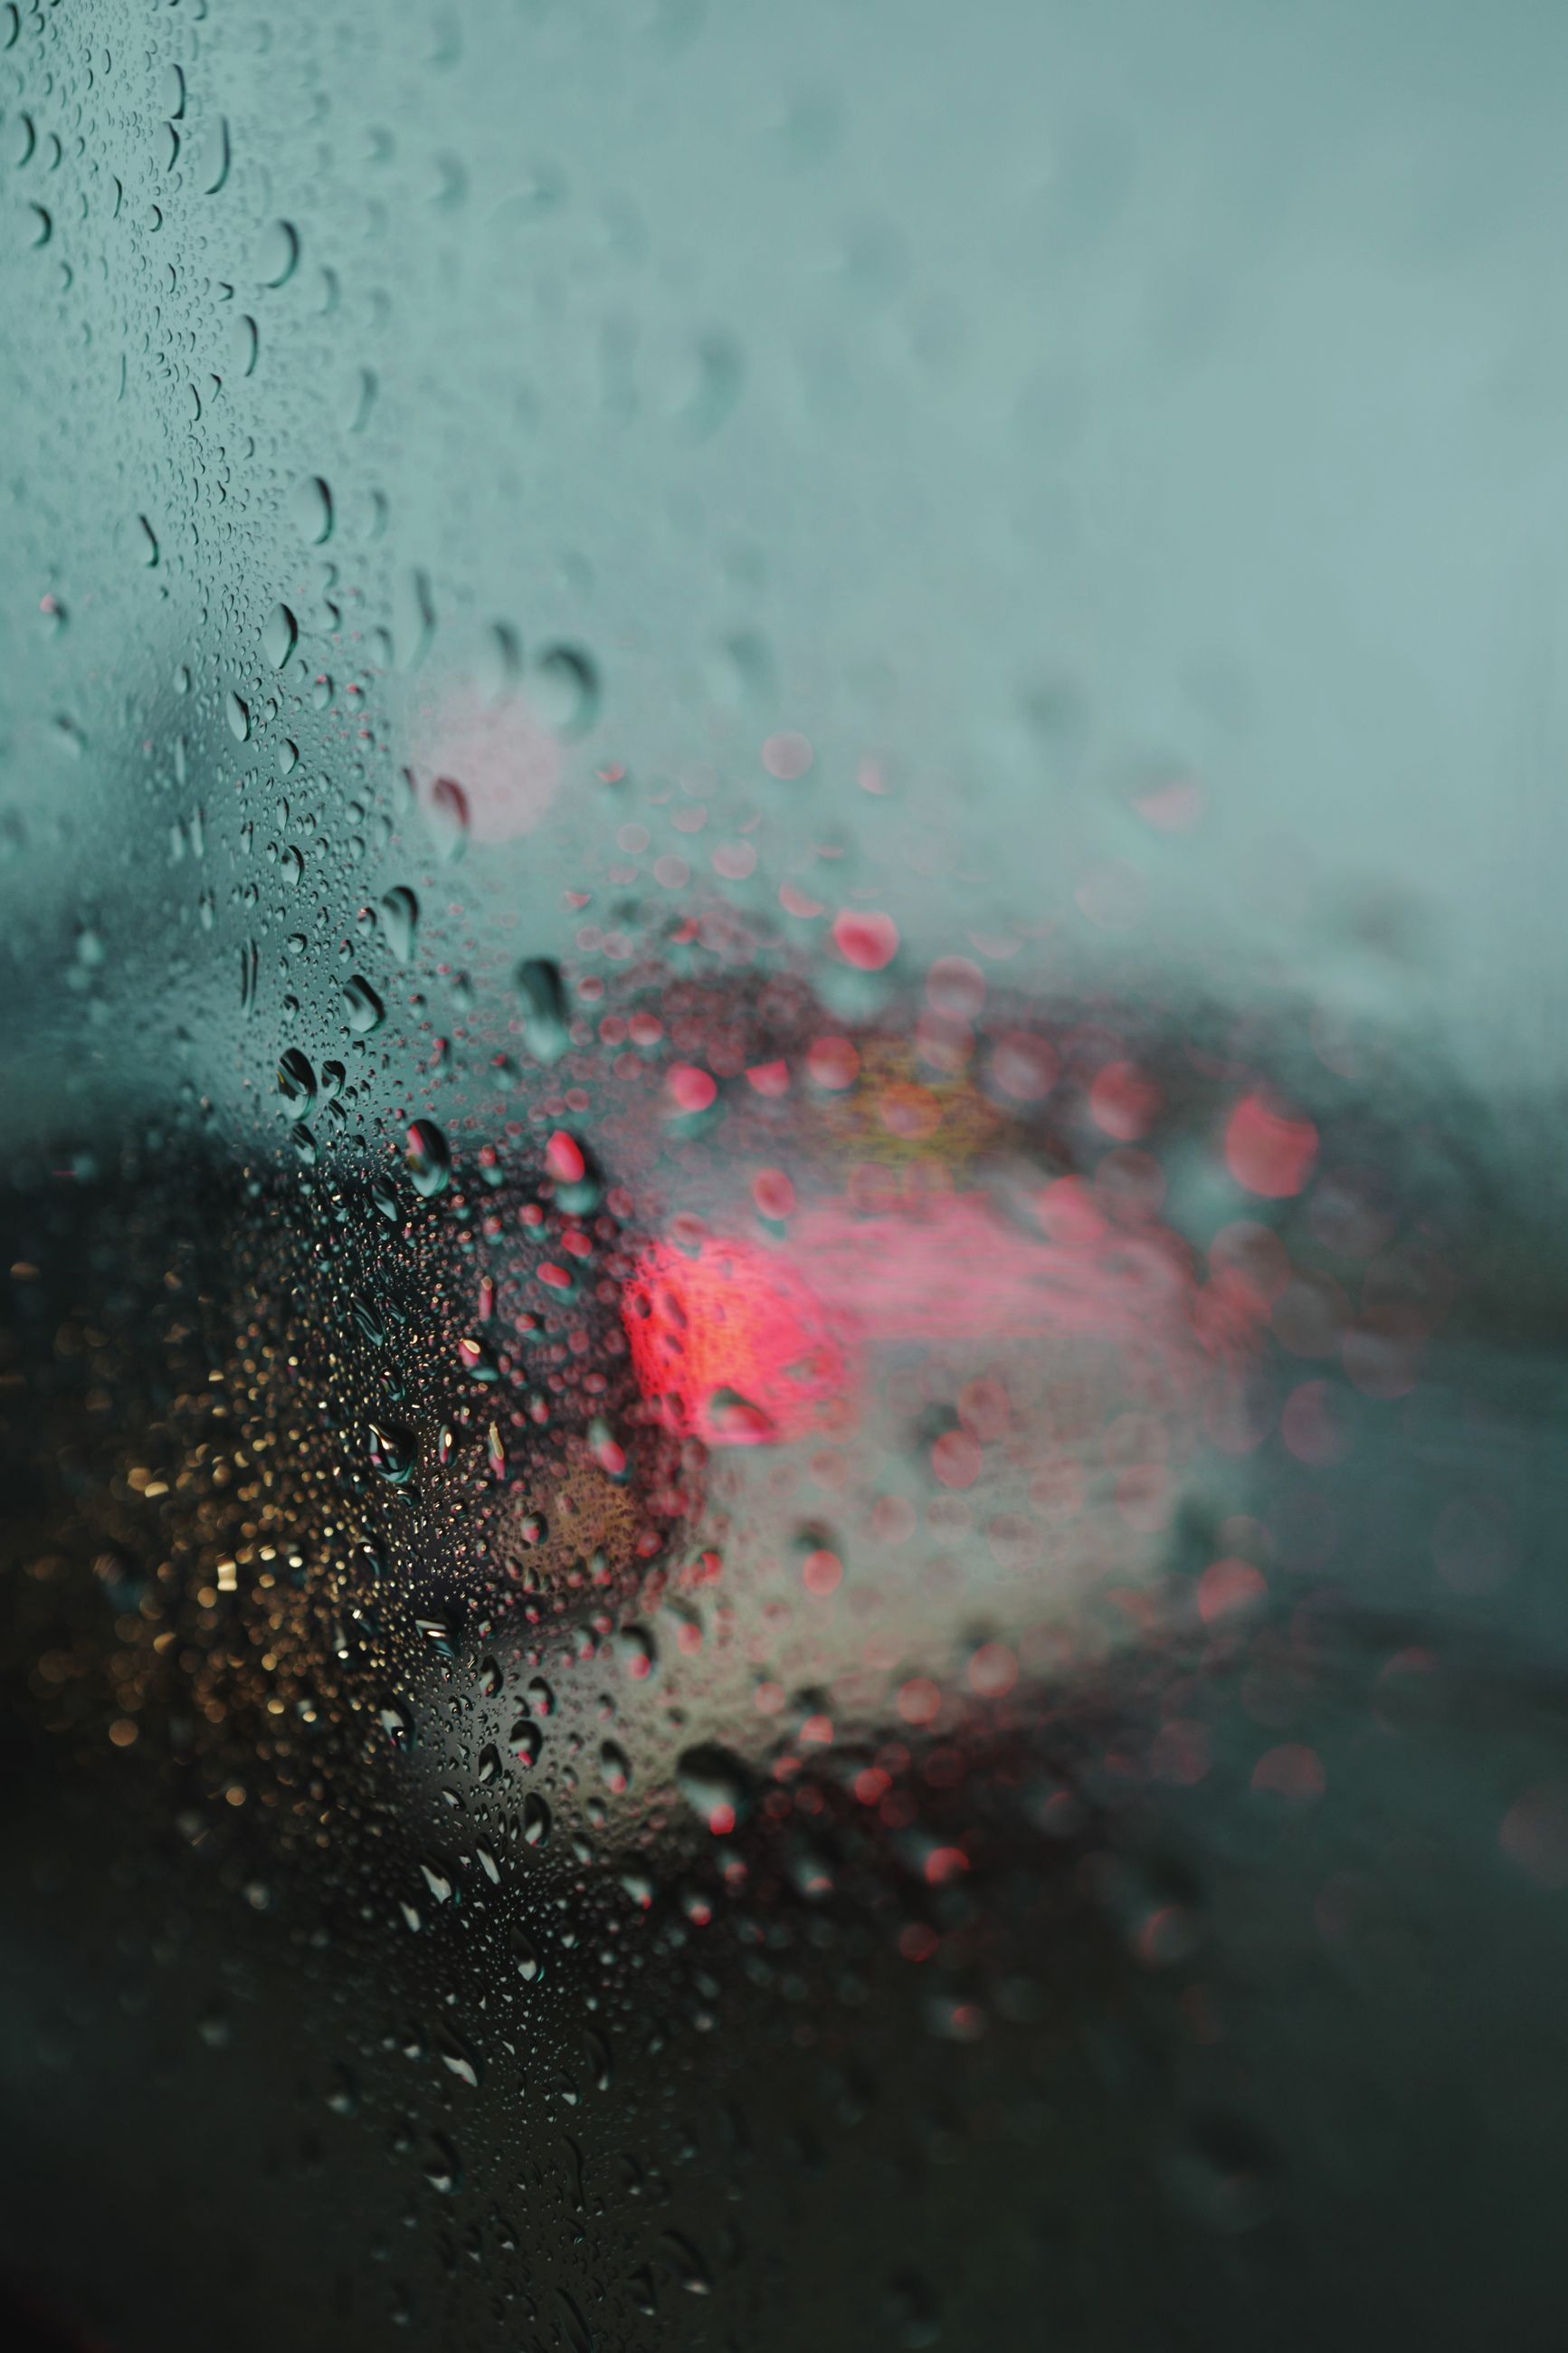 drop, wet, water, glass - material, rain, transparent, window, indoors, car, motor vehicle, nature, no people, rainy season, close-up, mode of transportation, land vehicle, vehicle interior, transportation, raindrop, glass